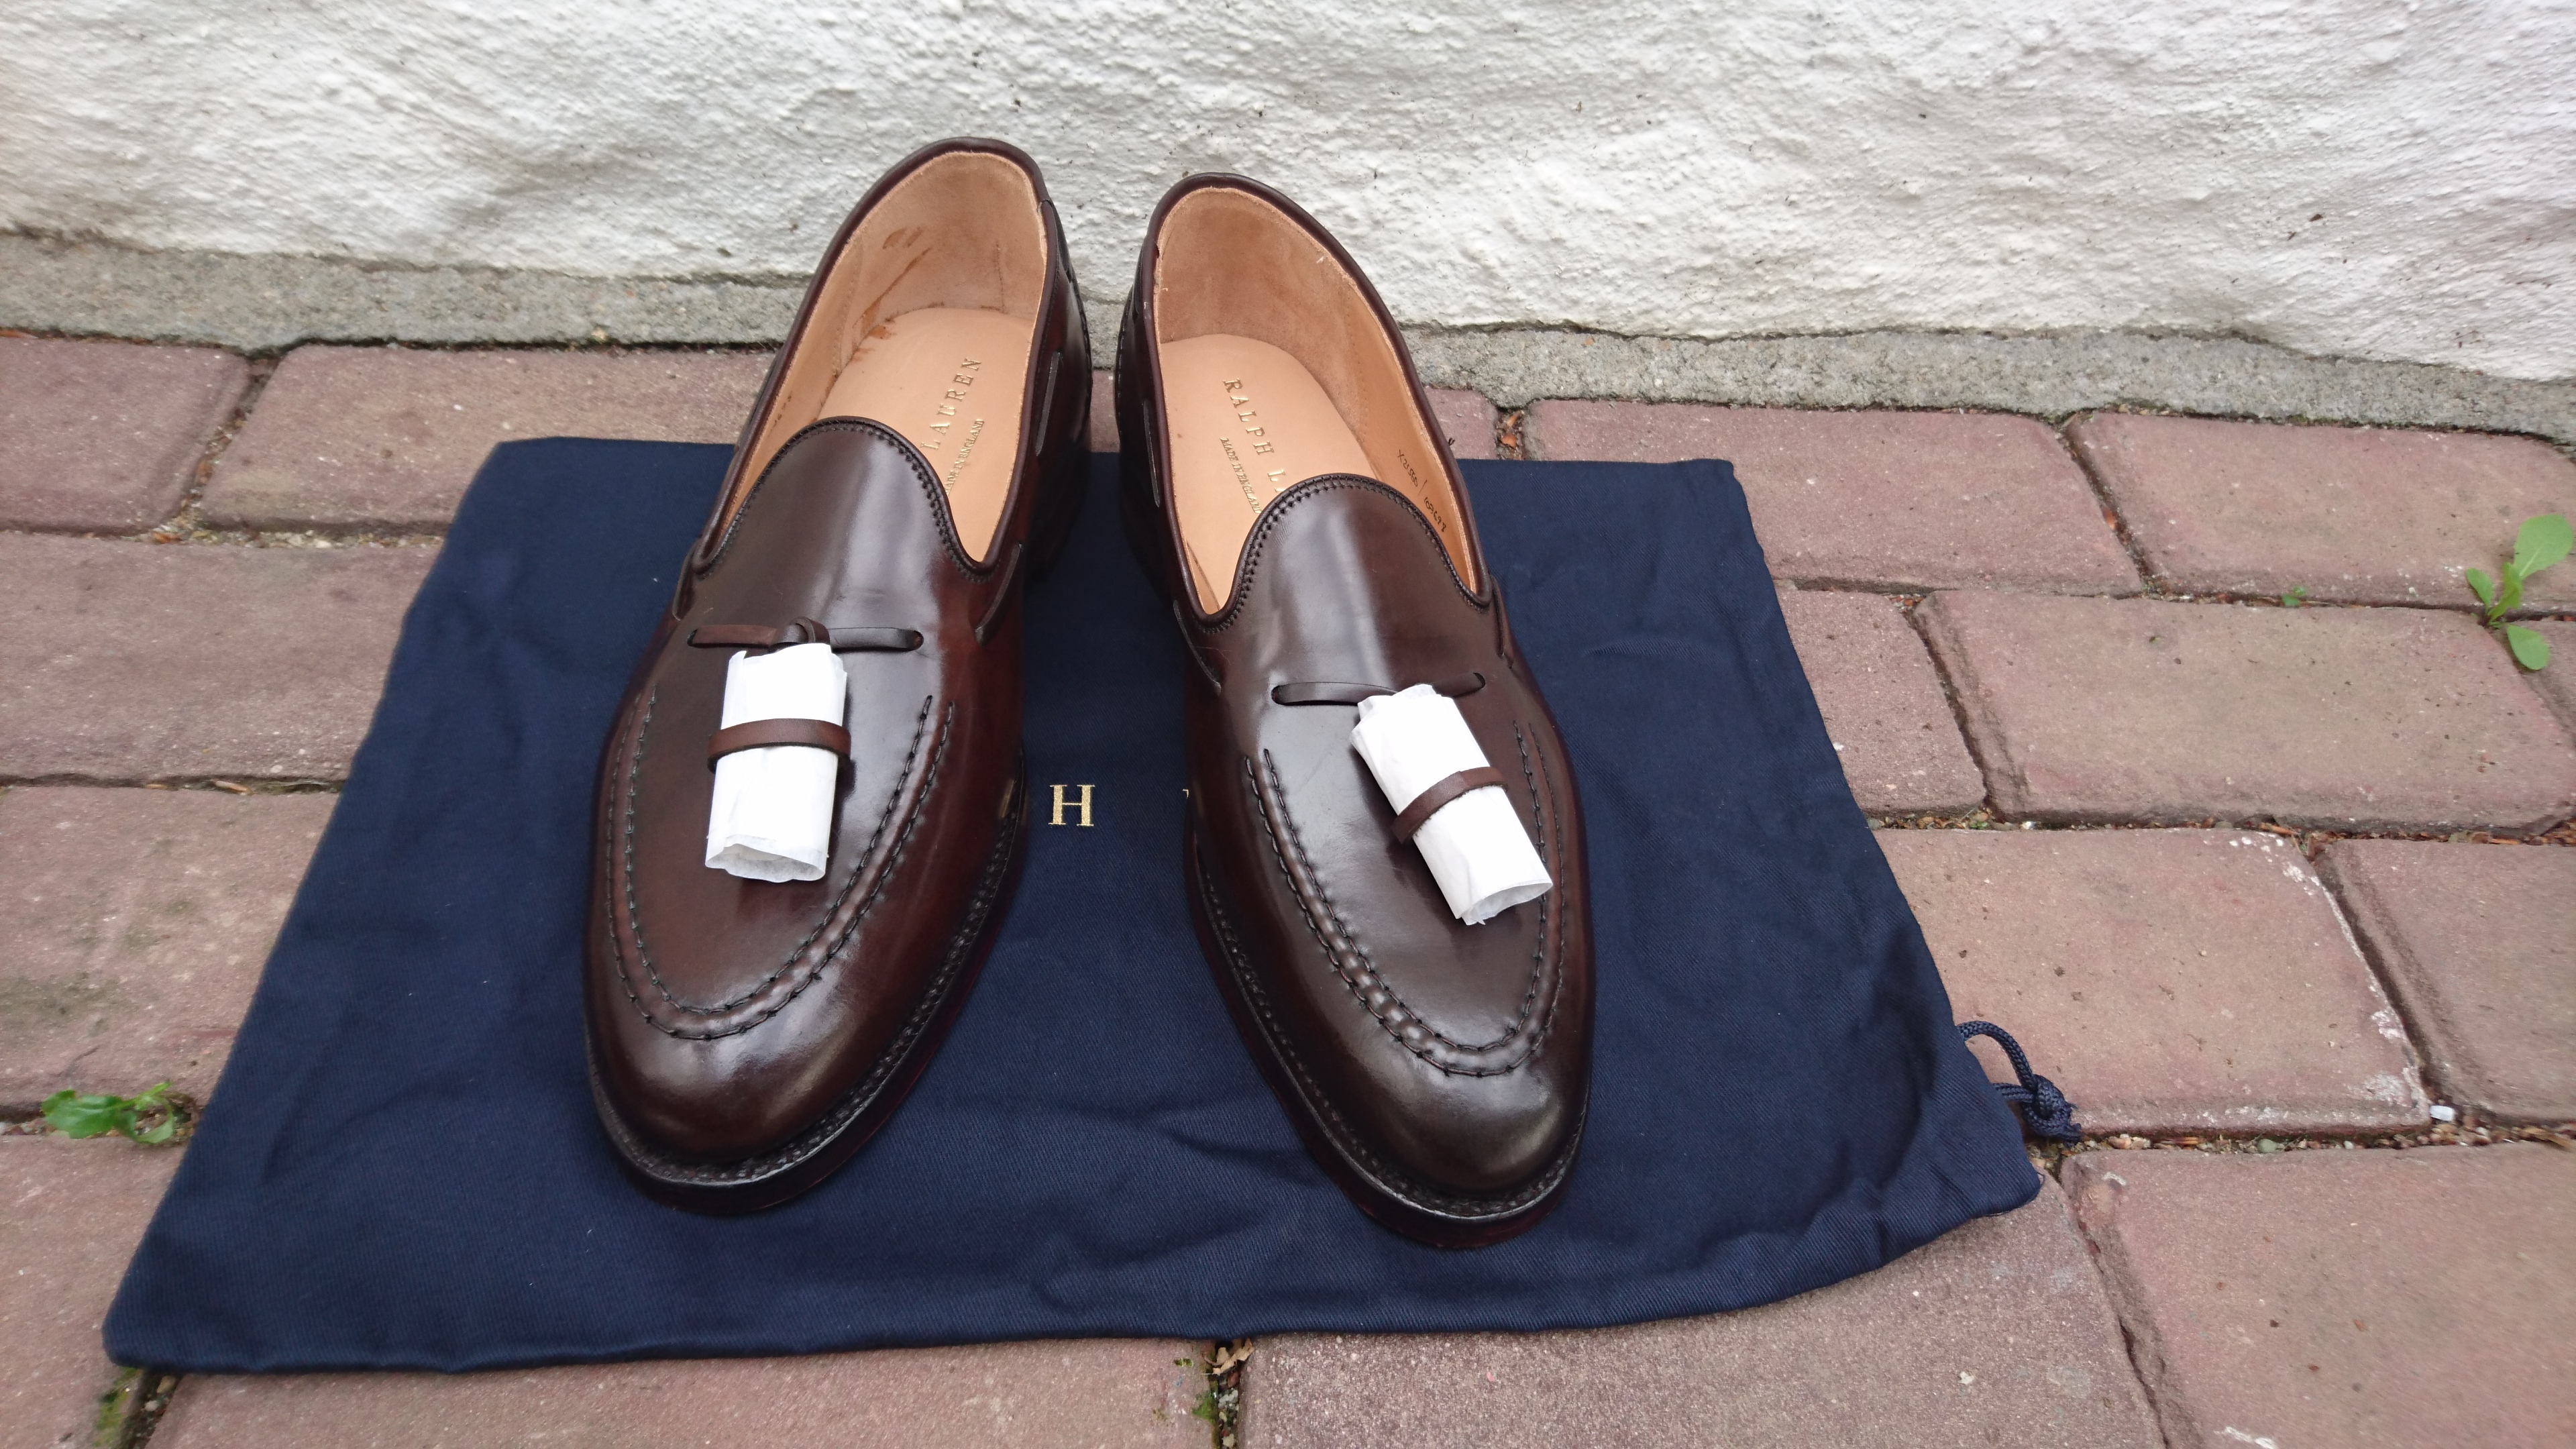 dijor's photos in New RARE Crockett Jones Ralph Lauren Cordovan Crup Tassel Loafer $995 8 9 10 11